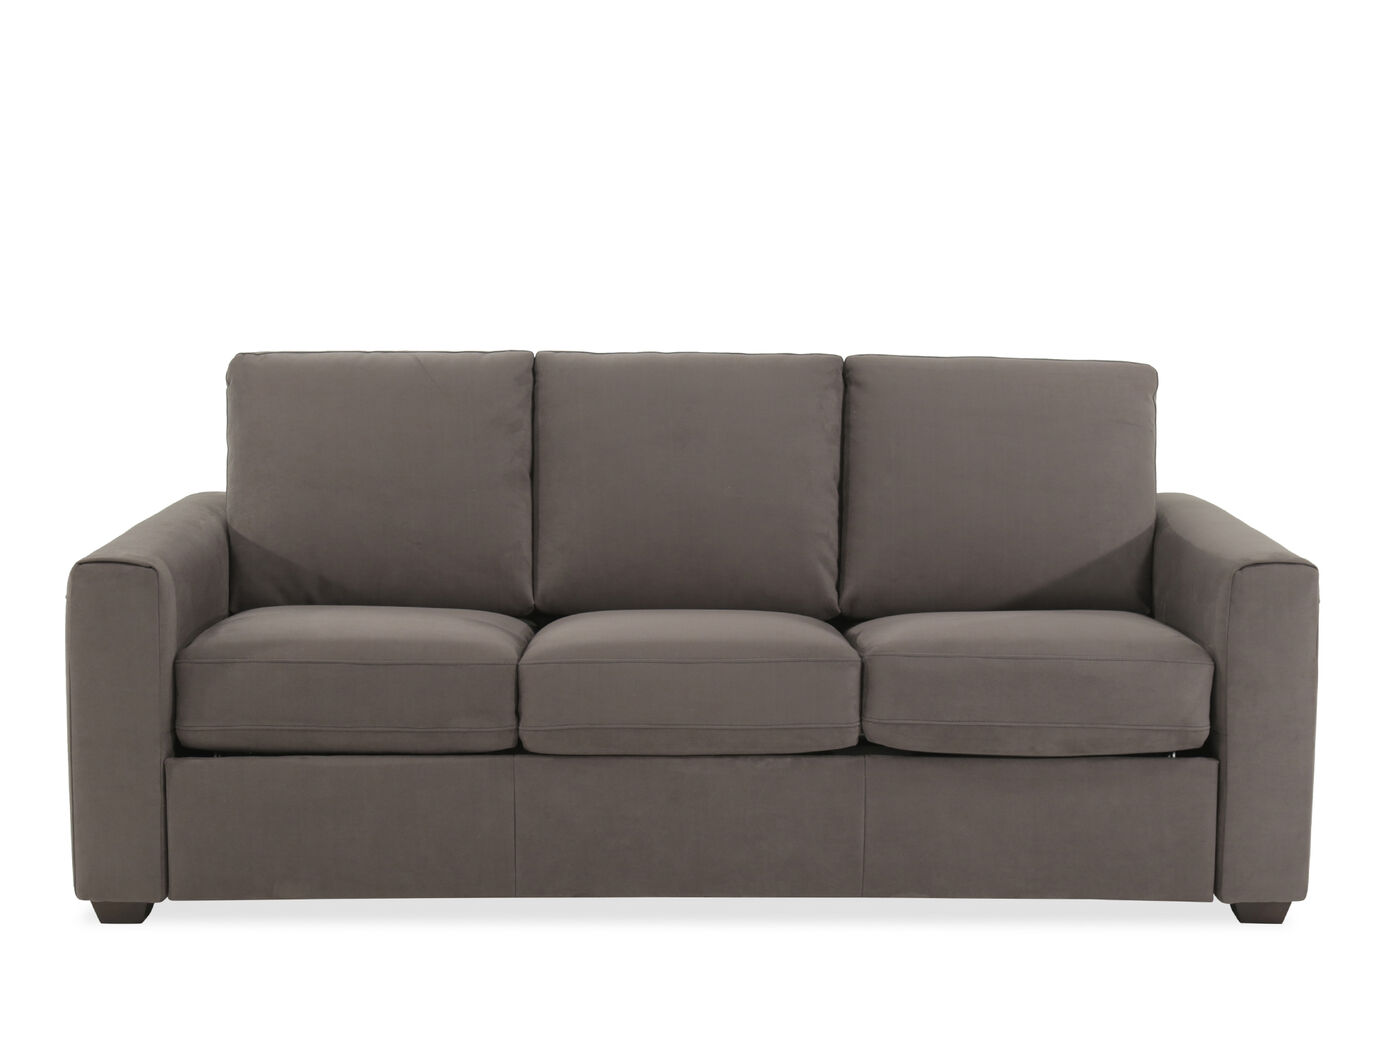 Casual 82 Queen Sleeper Sofa In Gray Mathis Brothers Furniture ~ Leather Sleeper Sofa Queen